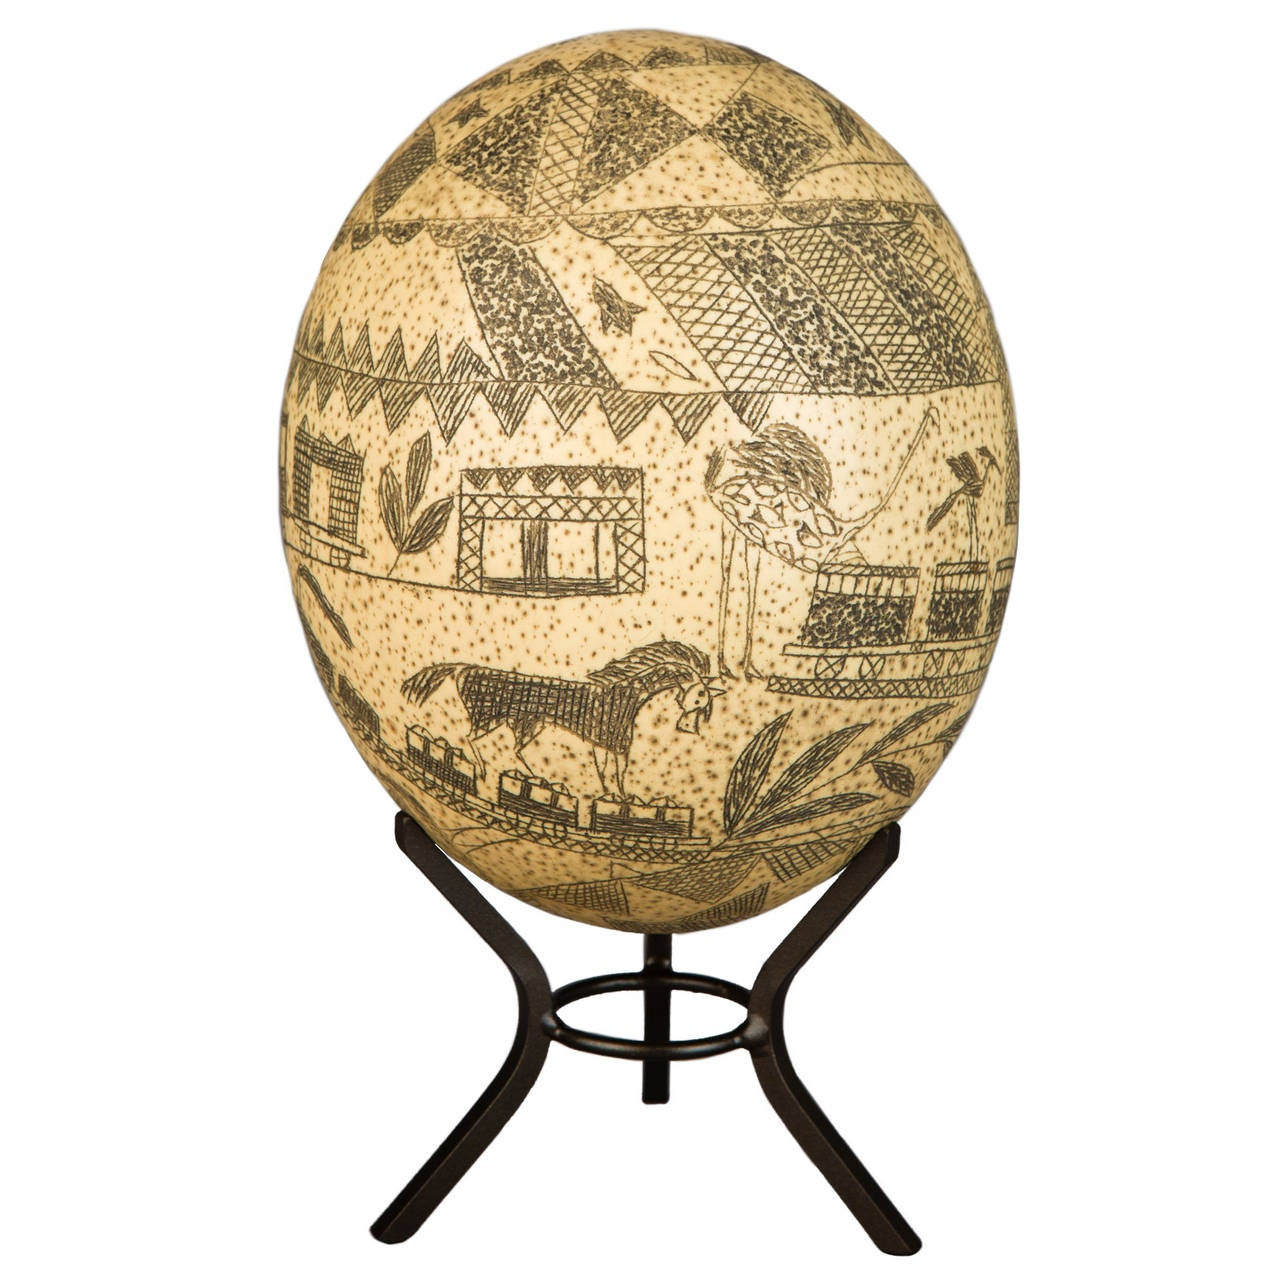 19th Century Carved Ostrich Egg, South Africa